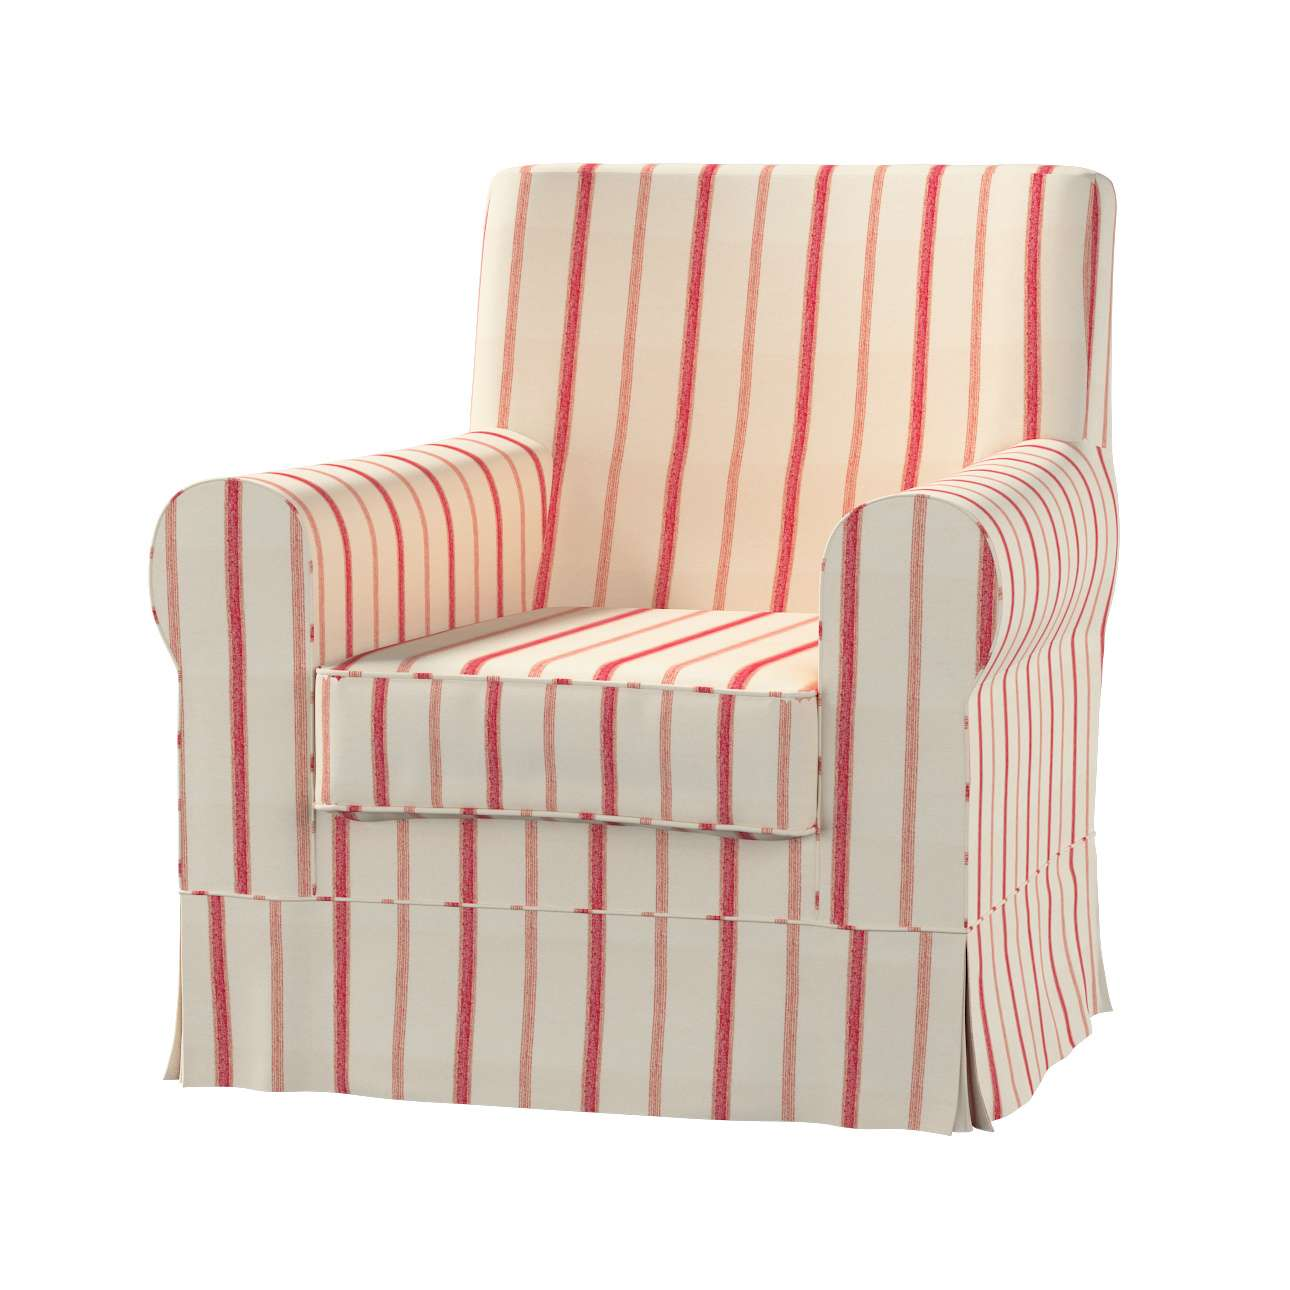 Ektorp Jennylund armchair cover Ektorp Jennylund armchair cover in collection Avinon fabric 129-  sc 1 st  Dekoria & Ektorp Jennylund armchair cover red stripes ivory background ...